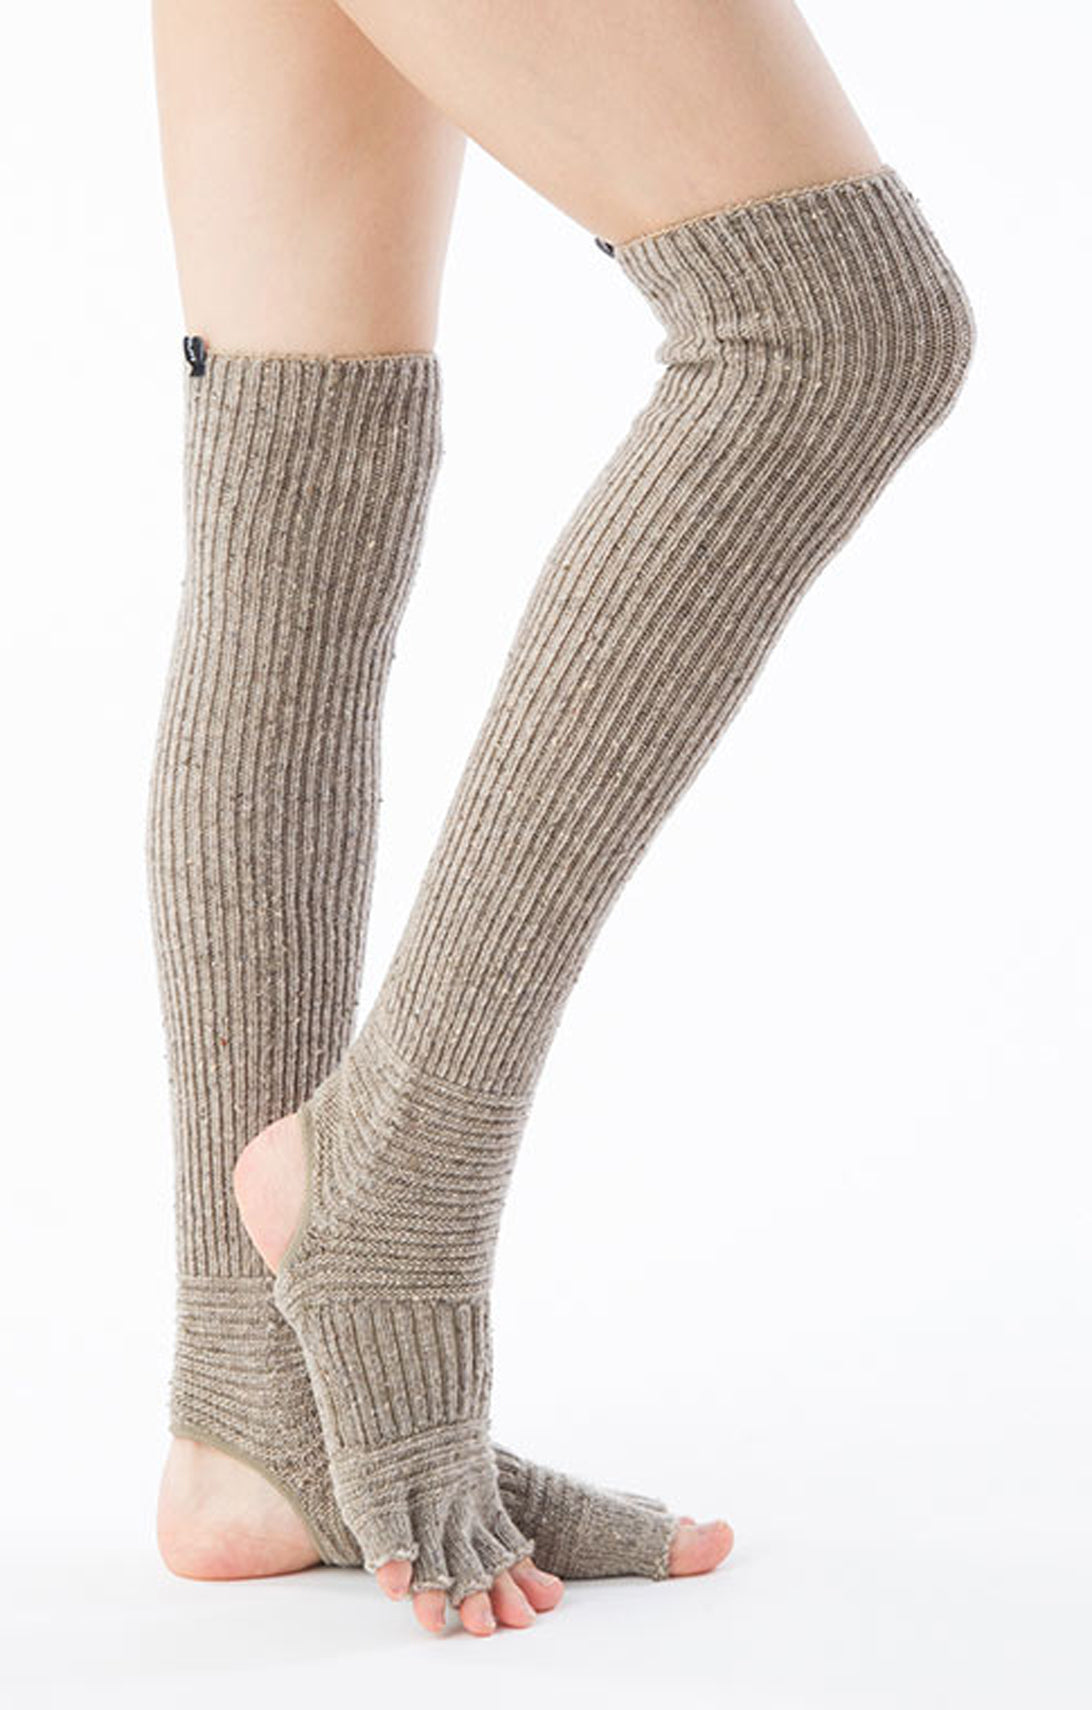 WOOL BLEND CONFETTI RIBBED OPEN TOE/HEEL LEG WARMERS SOCKS